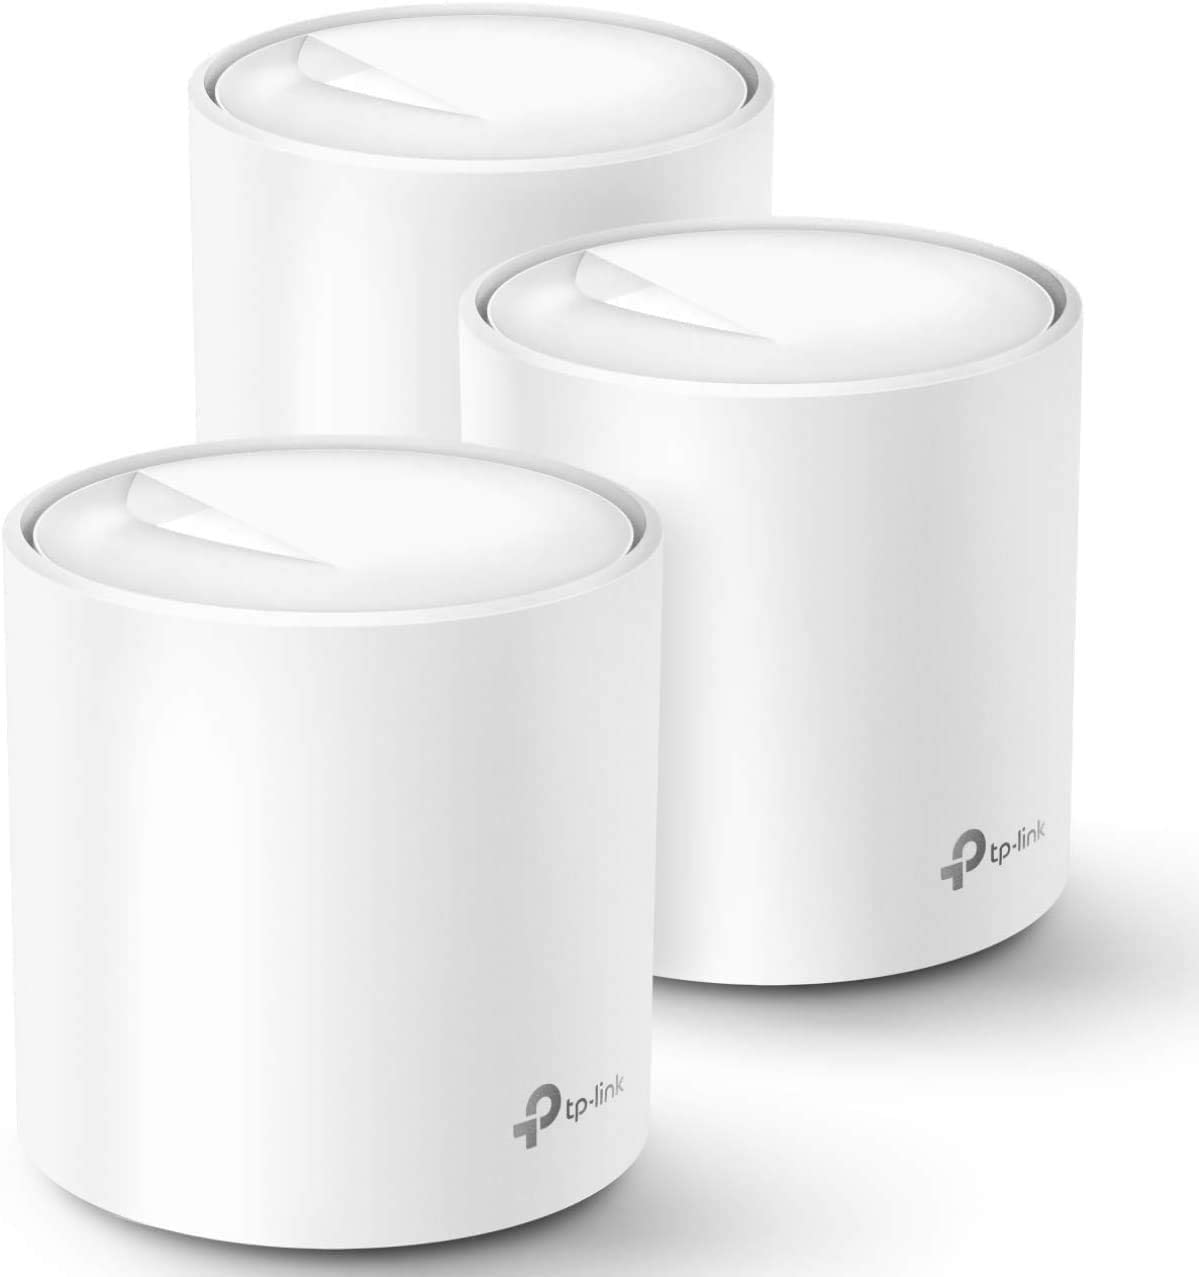 TP-Link Deco X60 WiFi 6 AX3000-3 Pack - Whole-Home Mesh Wi-Fi System (Renewed)